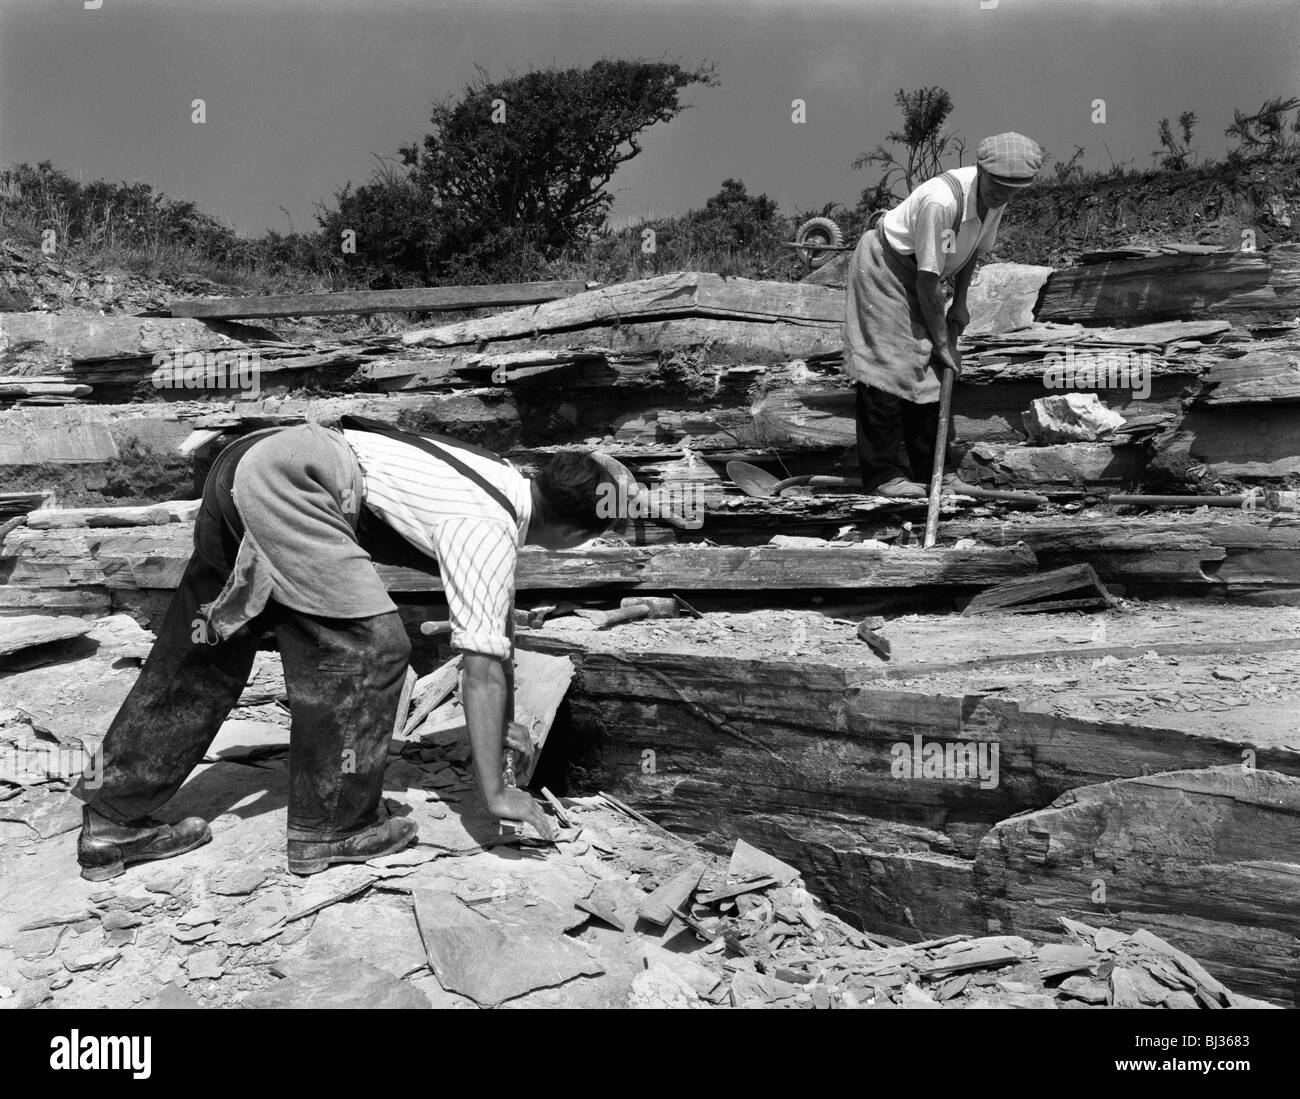 Quarrying slate by hand at Trebarwith Slate Quarry, Cornwall, 1959. Artist: Michael Walters - Stock Image